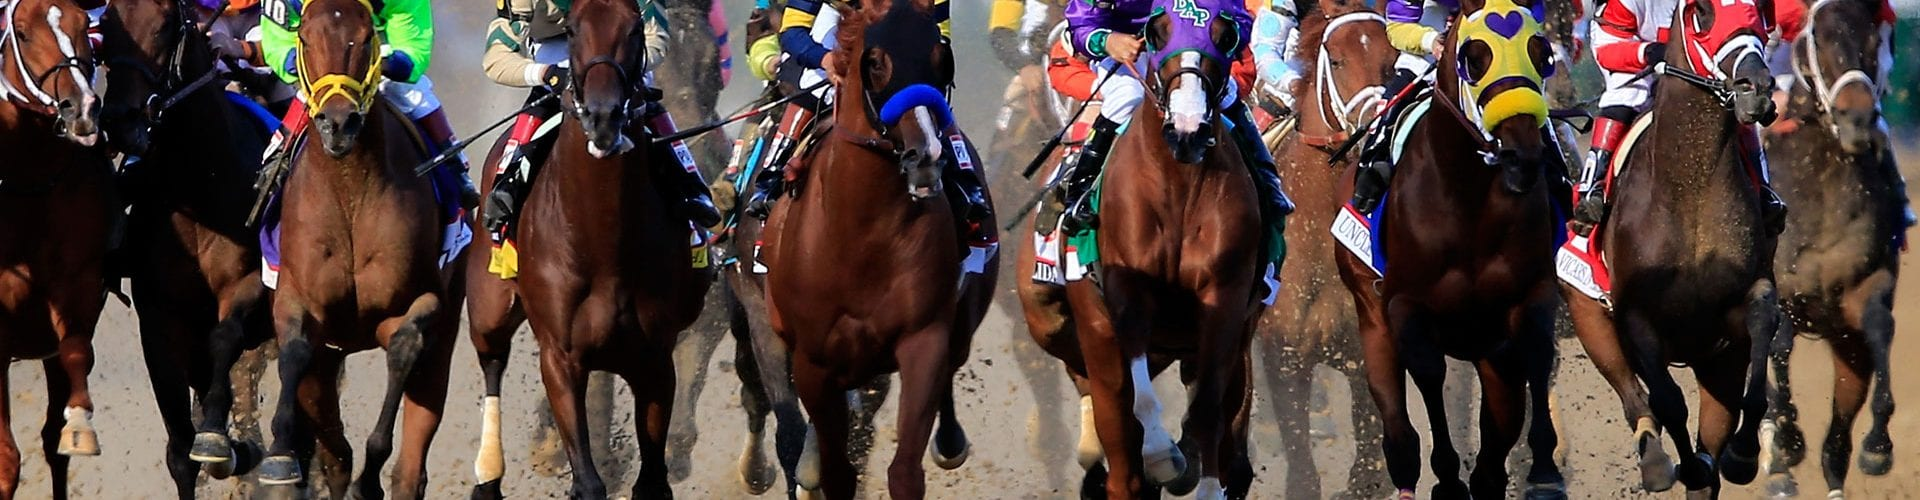 Kentucky Derby Headlines Mid-Week Best-Selling Events